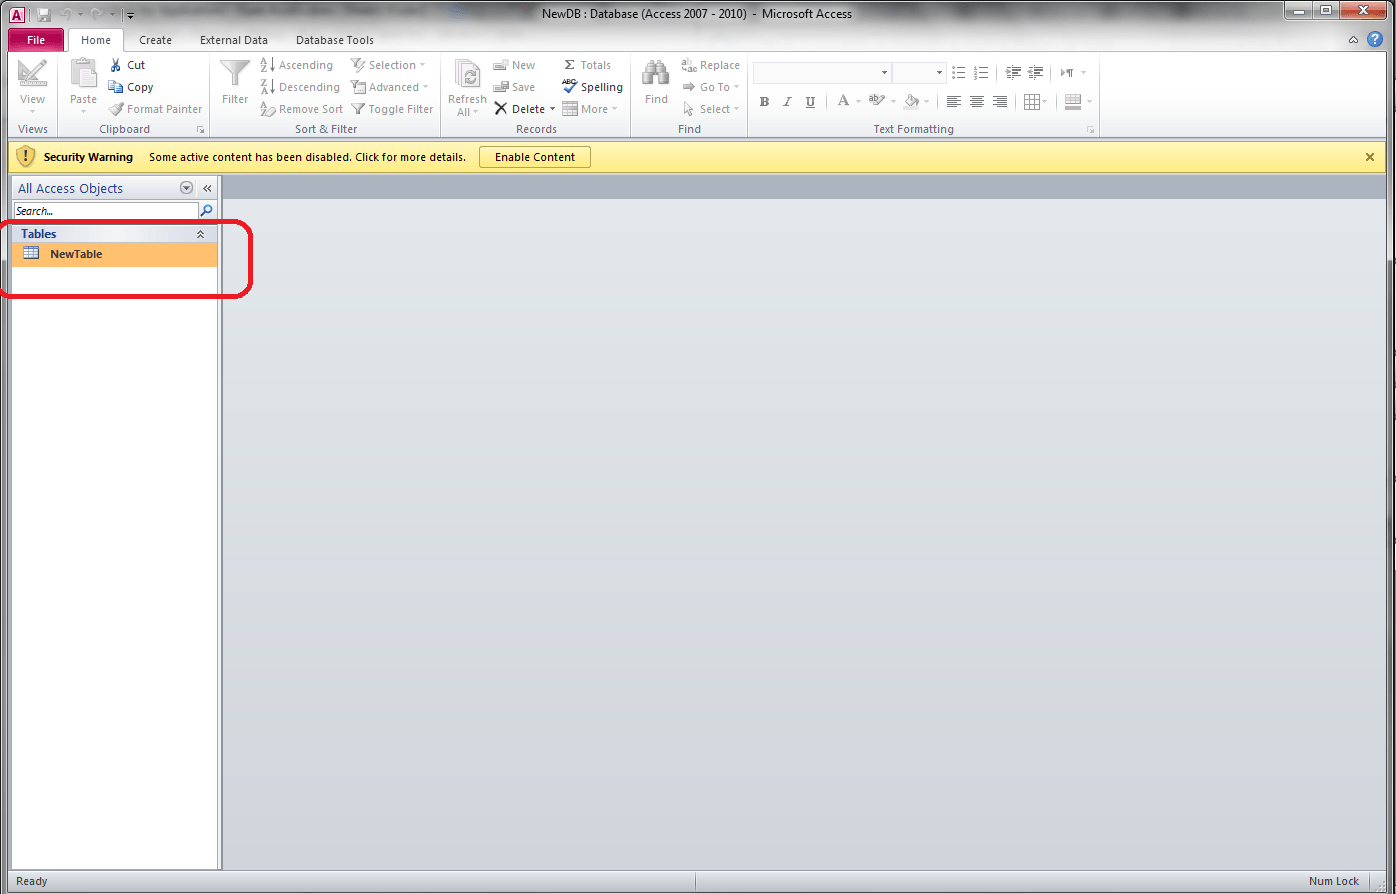 Vba Create New Access Database From Excel